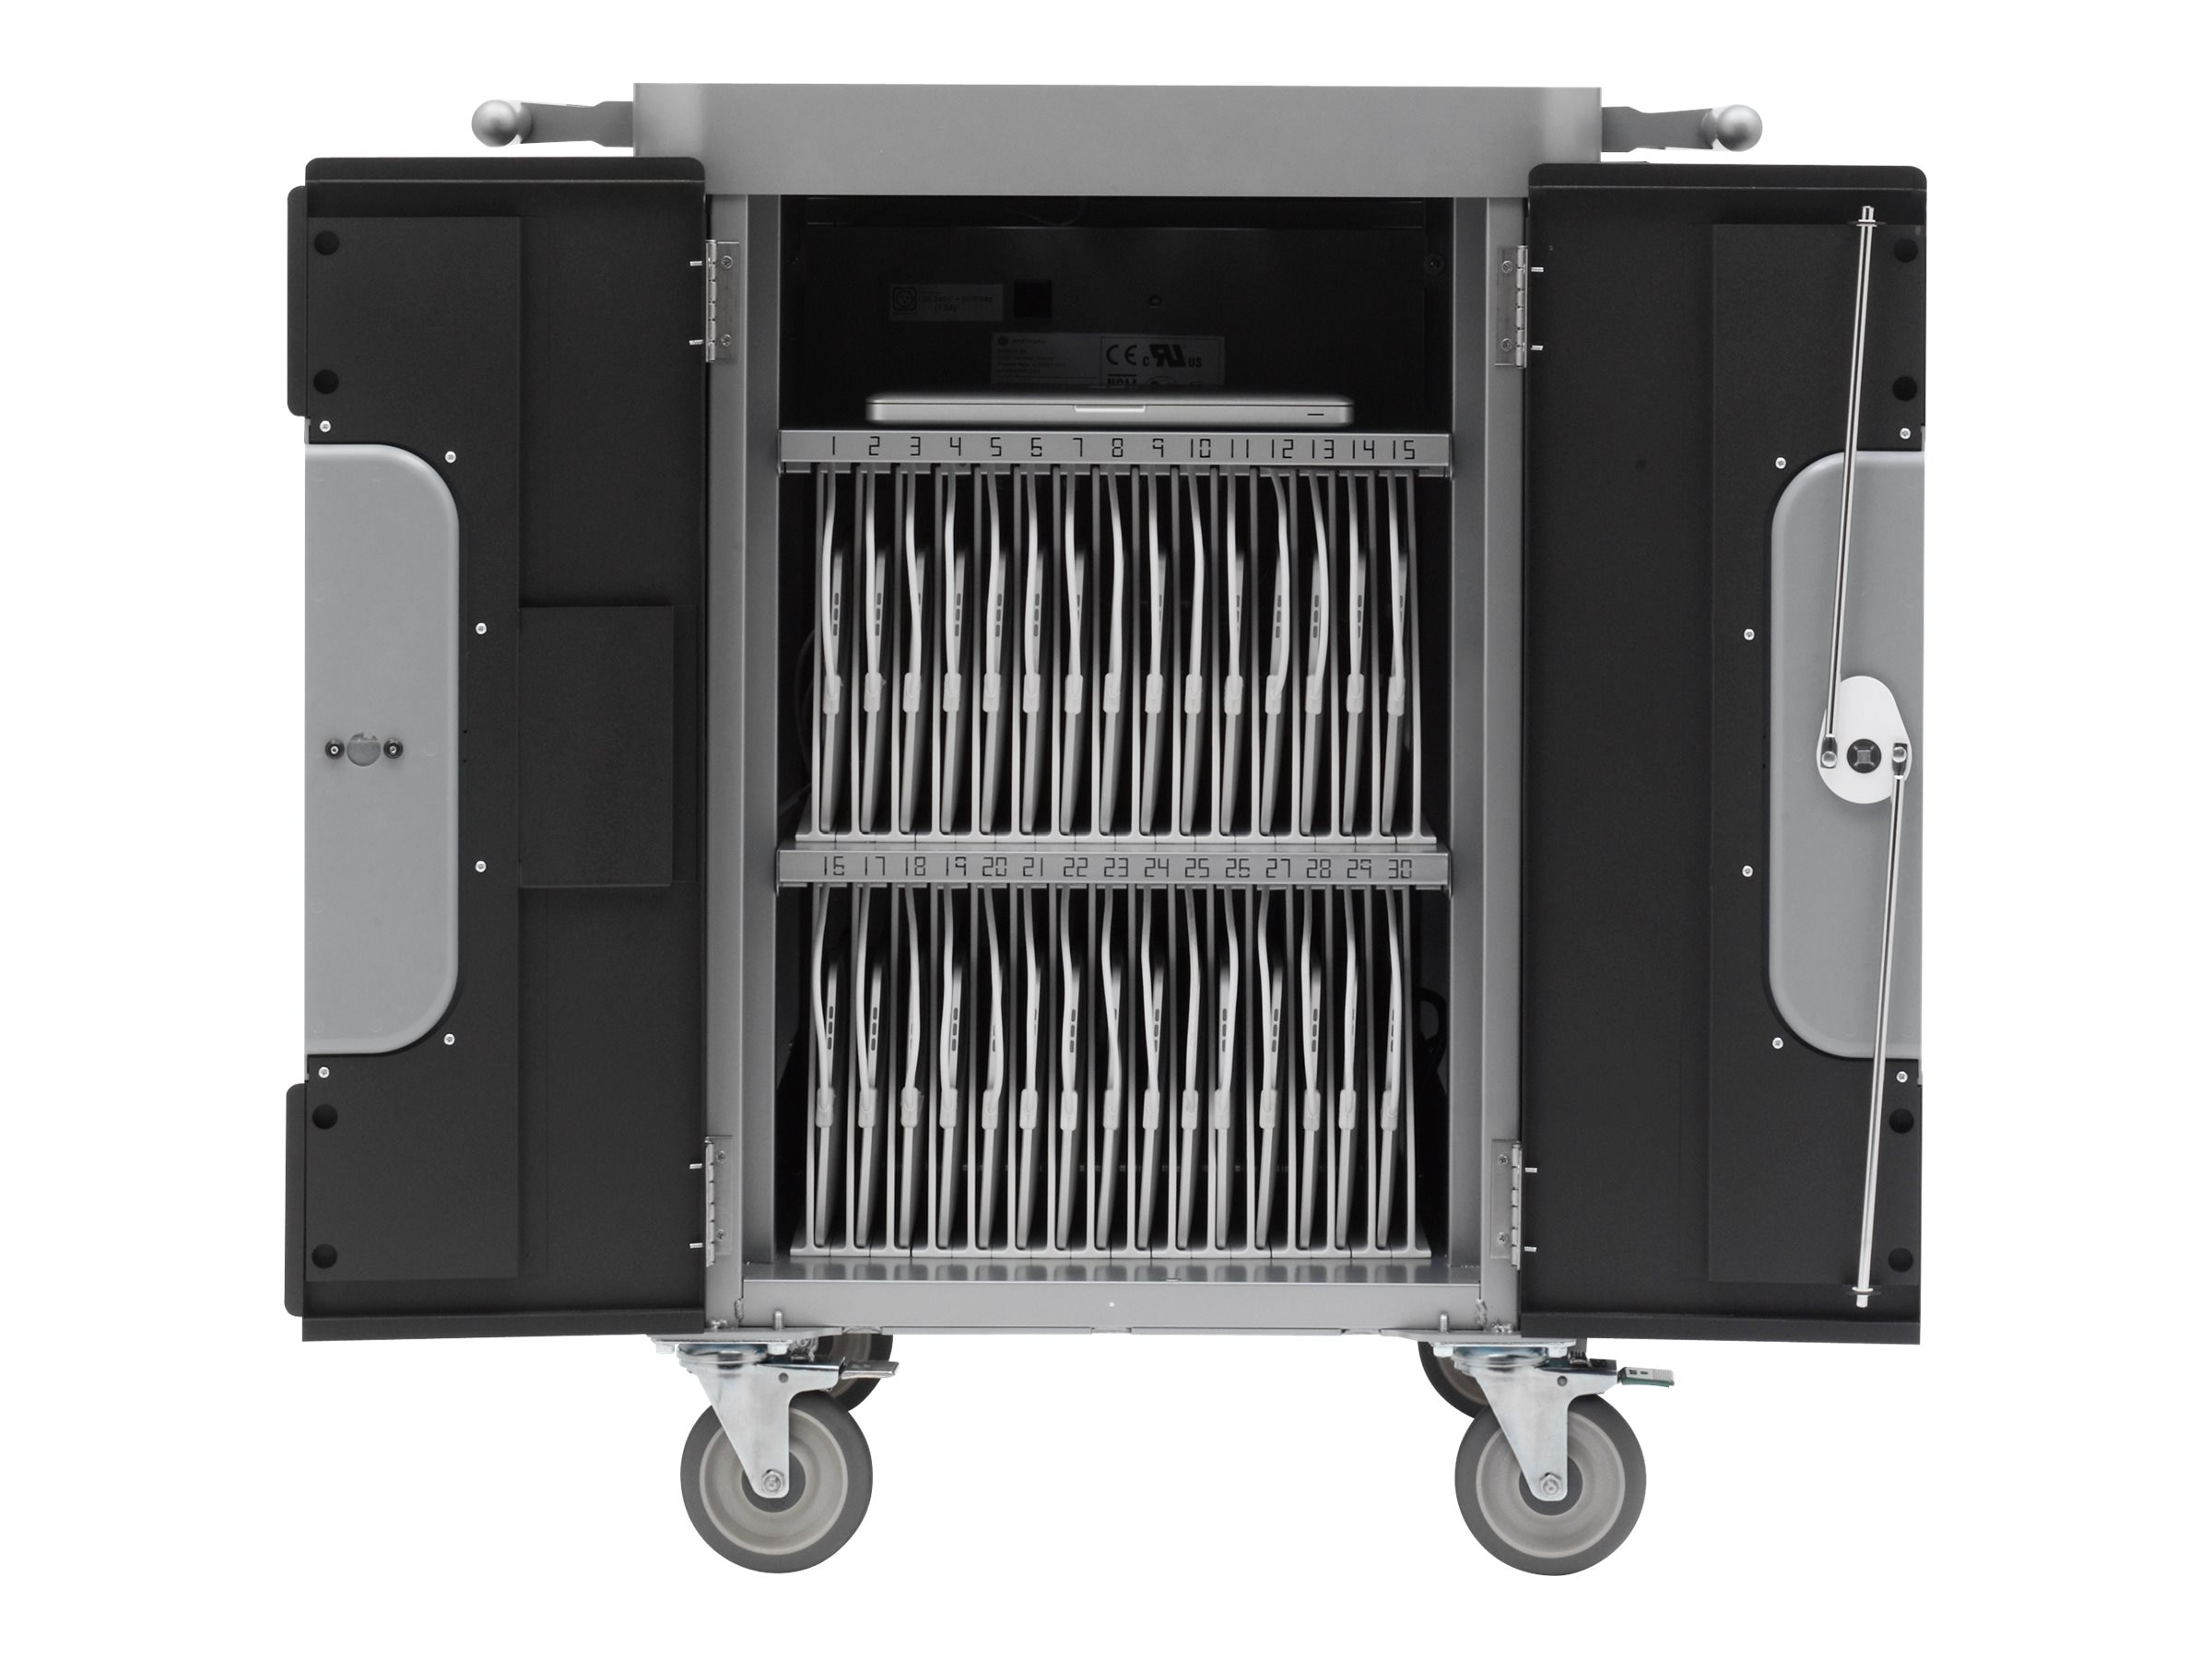 Bretford Manufacturing 30-unit PowerSync Cart for iPad, iPad Mini with Lightning Connector, HB716BG1, 17411640, Computer Carts